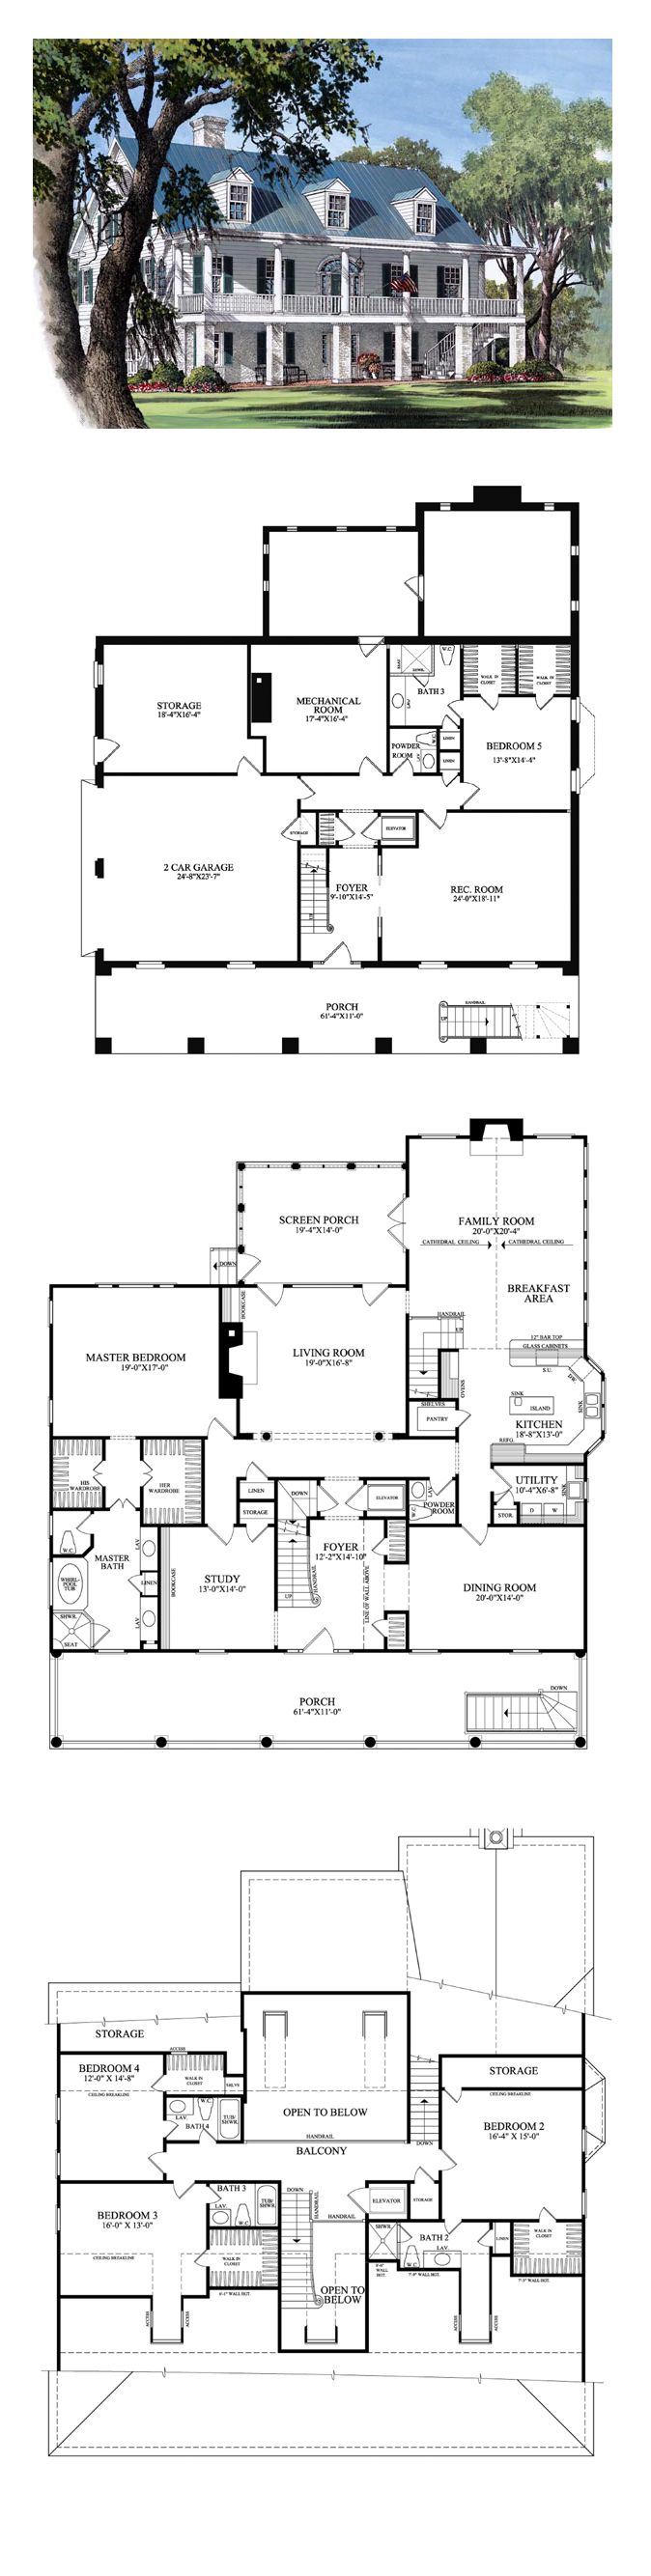 Best 25 southern plantation style ideas on pinterest for Plantation floor plan